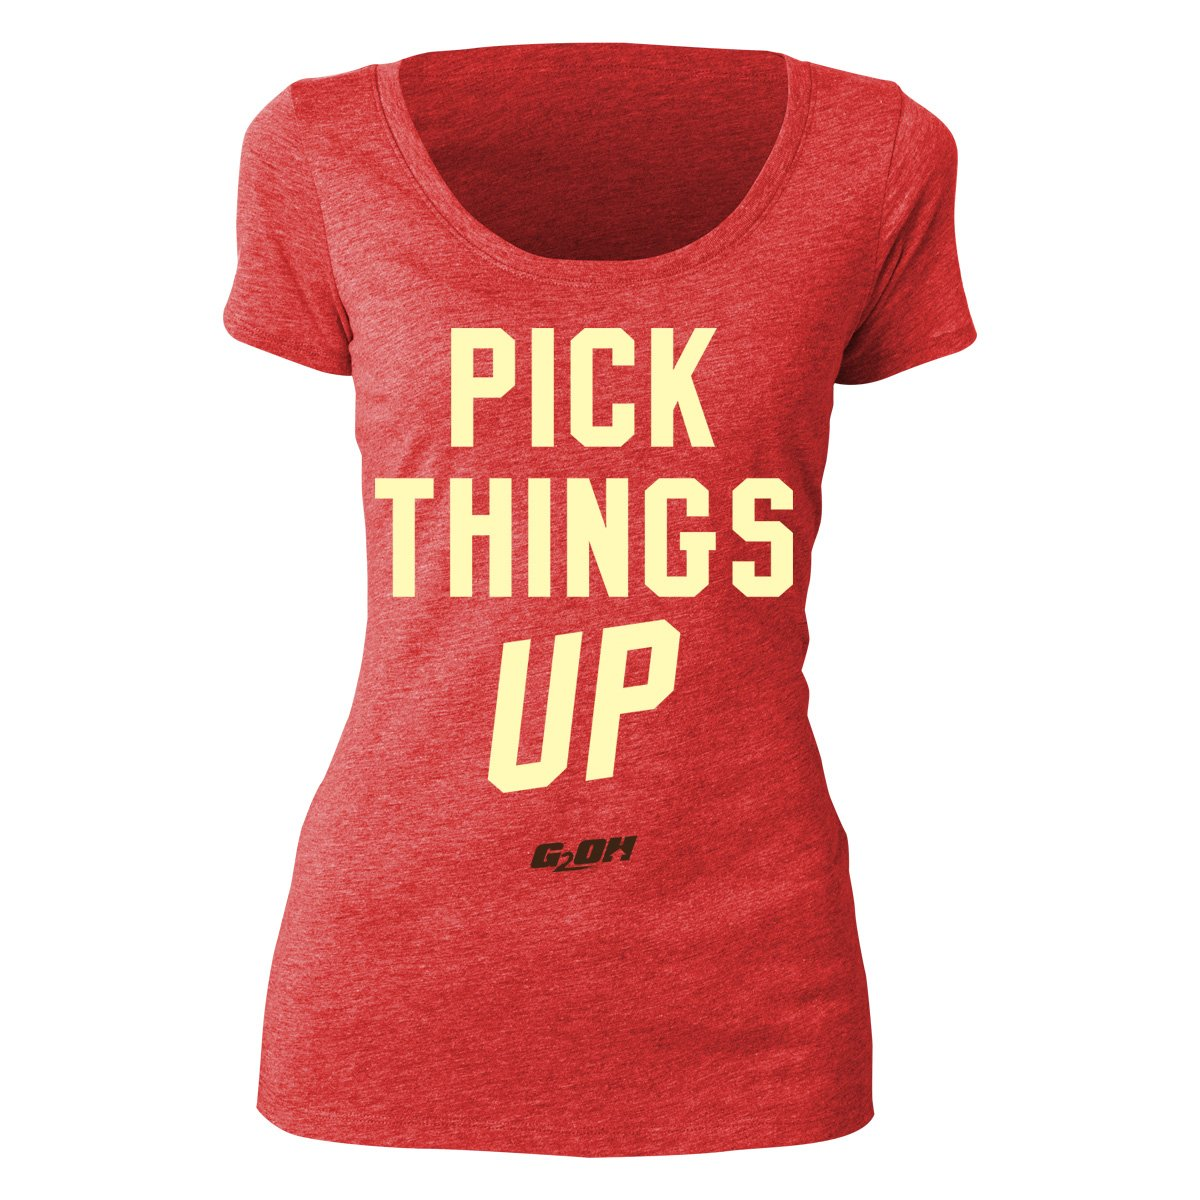 Pick up things